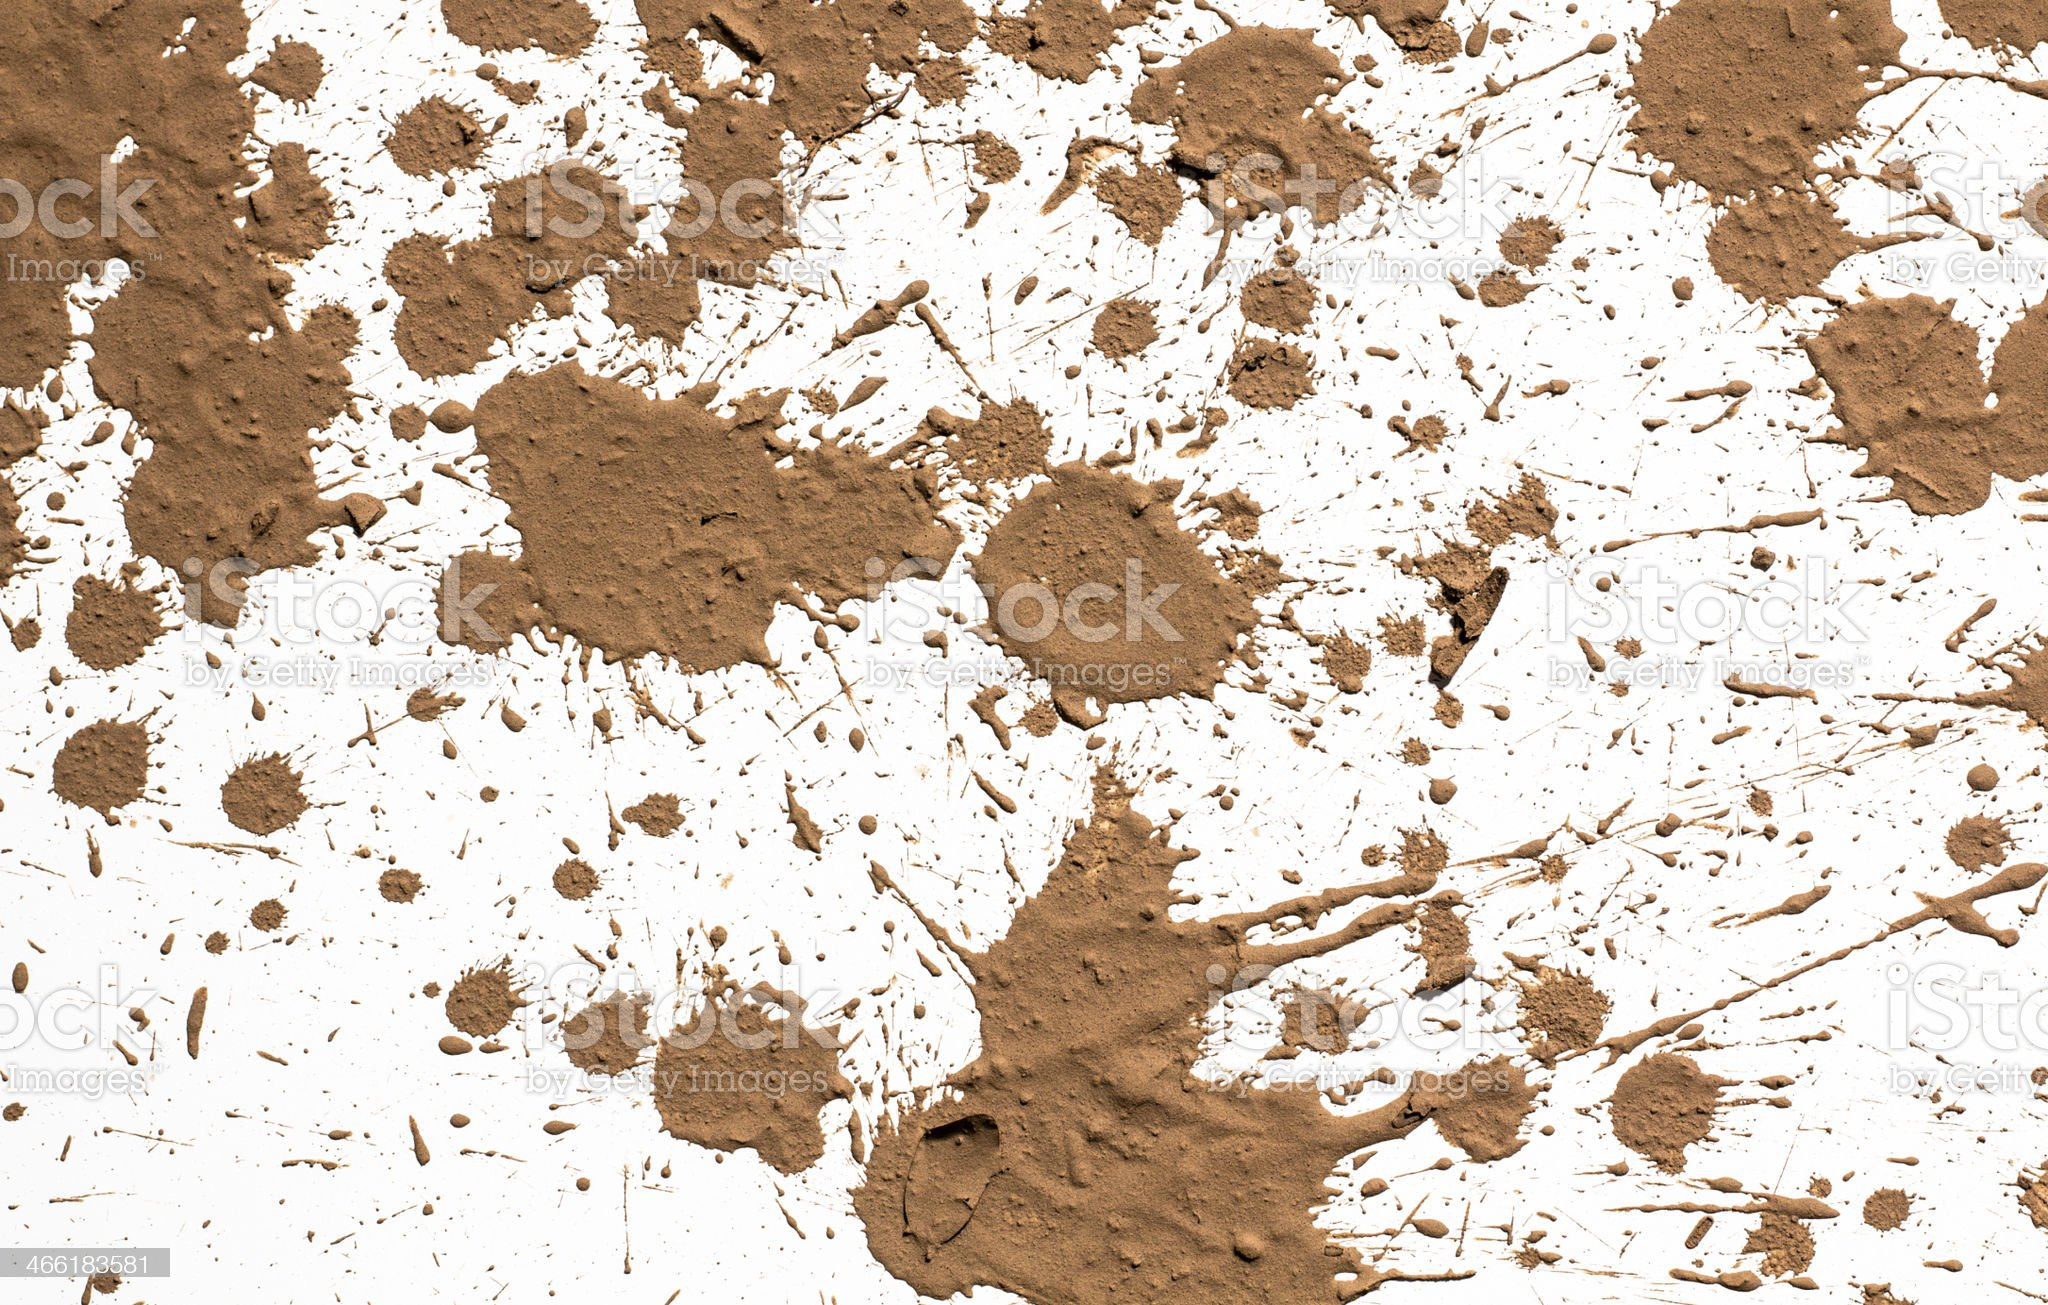 Brown texture clay splashed on white background royalty-free stock photo